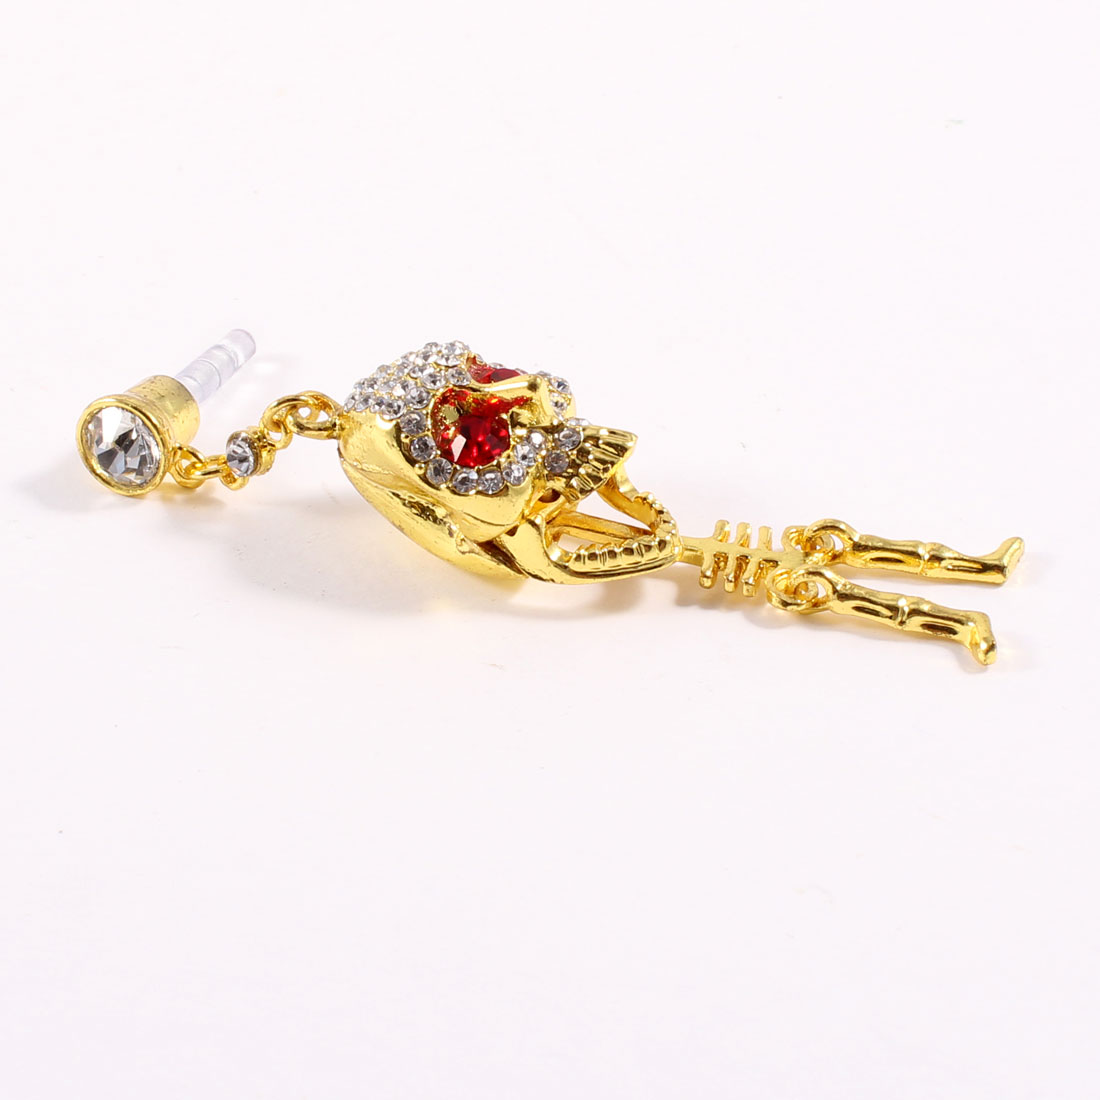 Gold Tone Skull Pendant 3.5mm Earphone Ear Cap Anti Dust for Mobile Phone